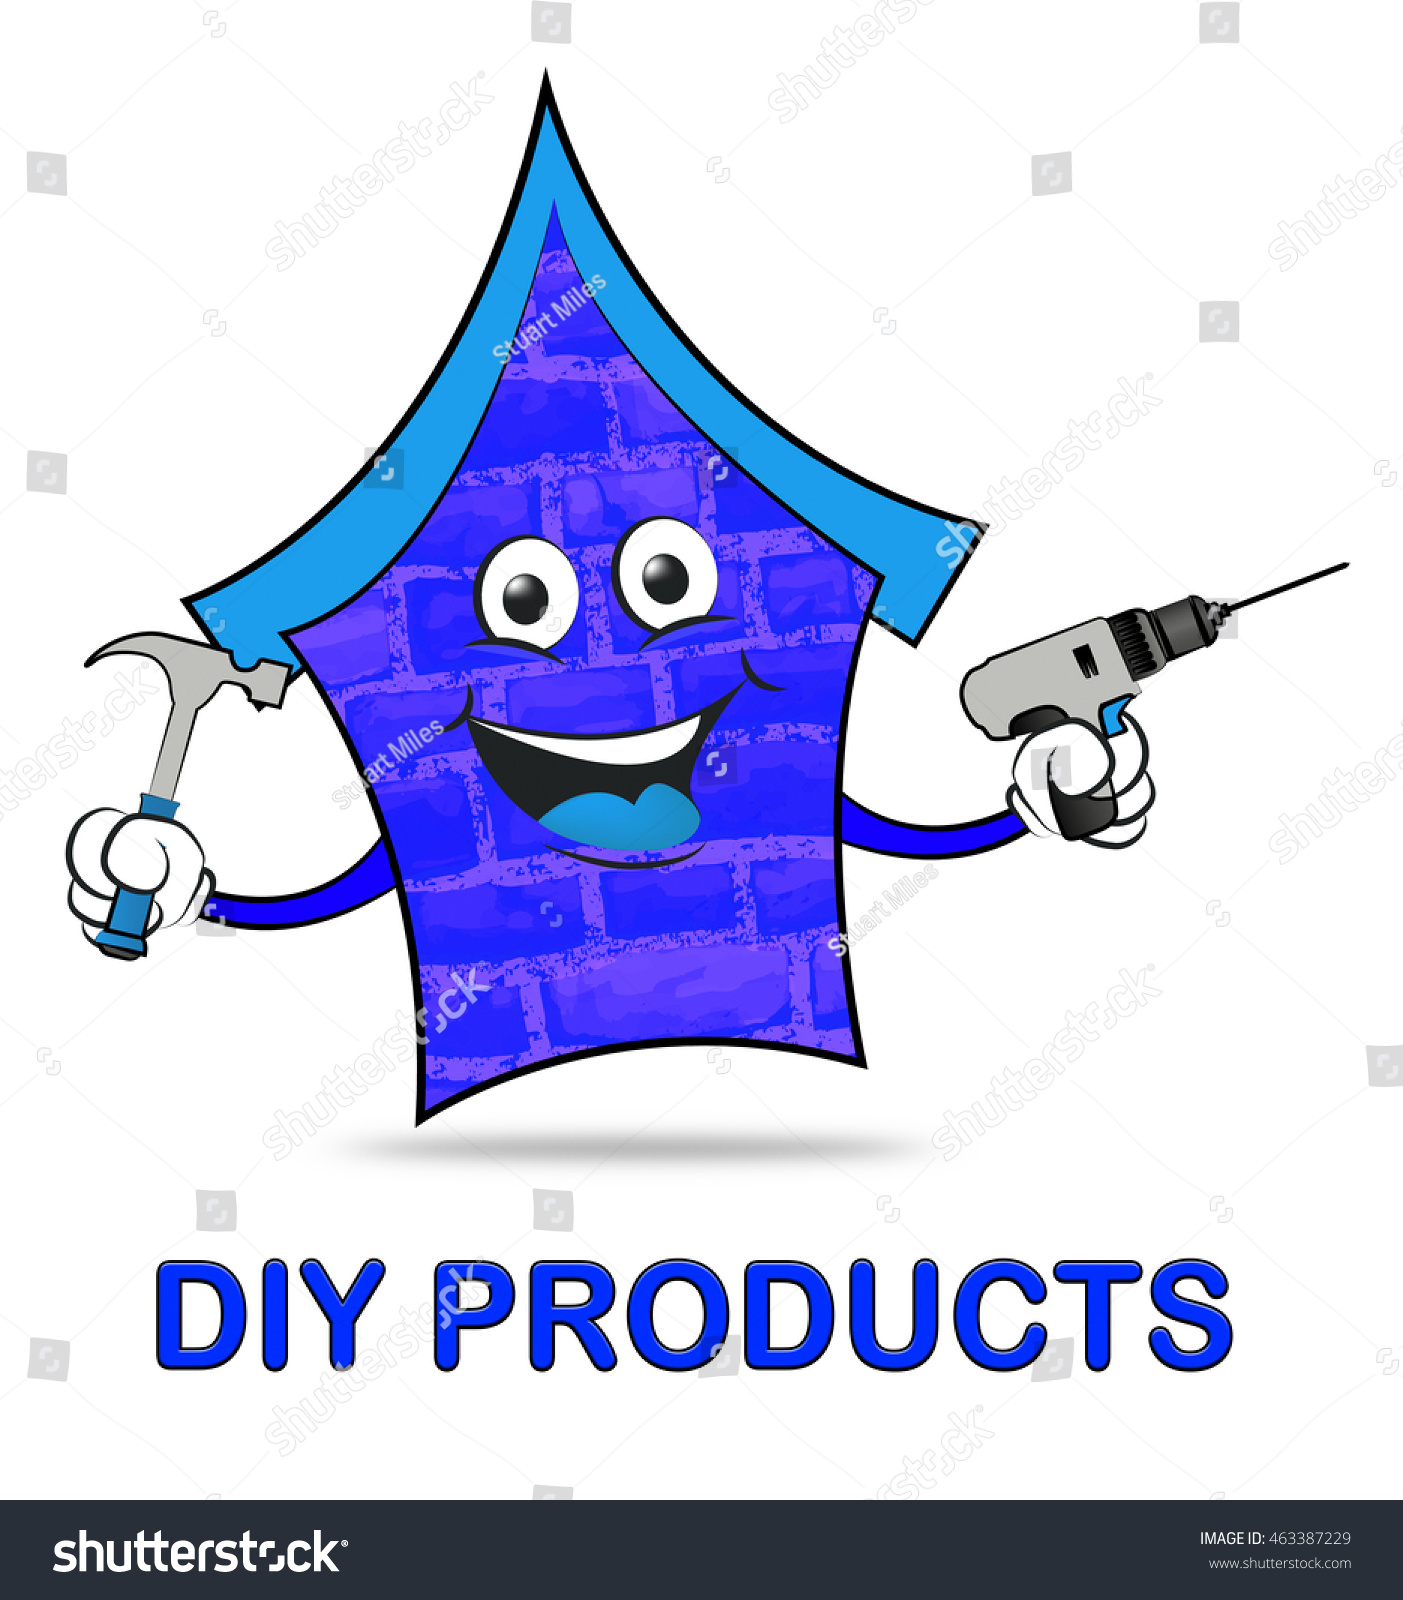 Diy products meaning do yourself real stock illustration 463387229 diy products meaning do it yourself and real estate solutioingenieria Gallery